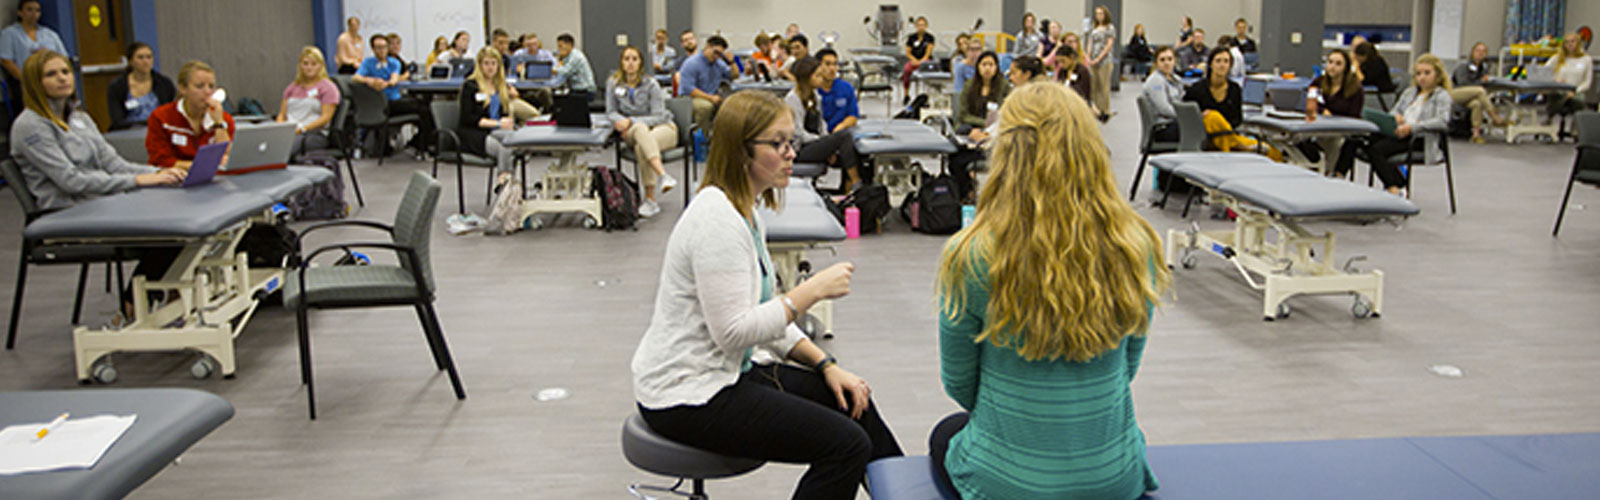 group of students for the nations first doctor of physical therapy program